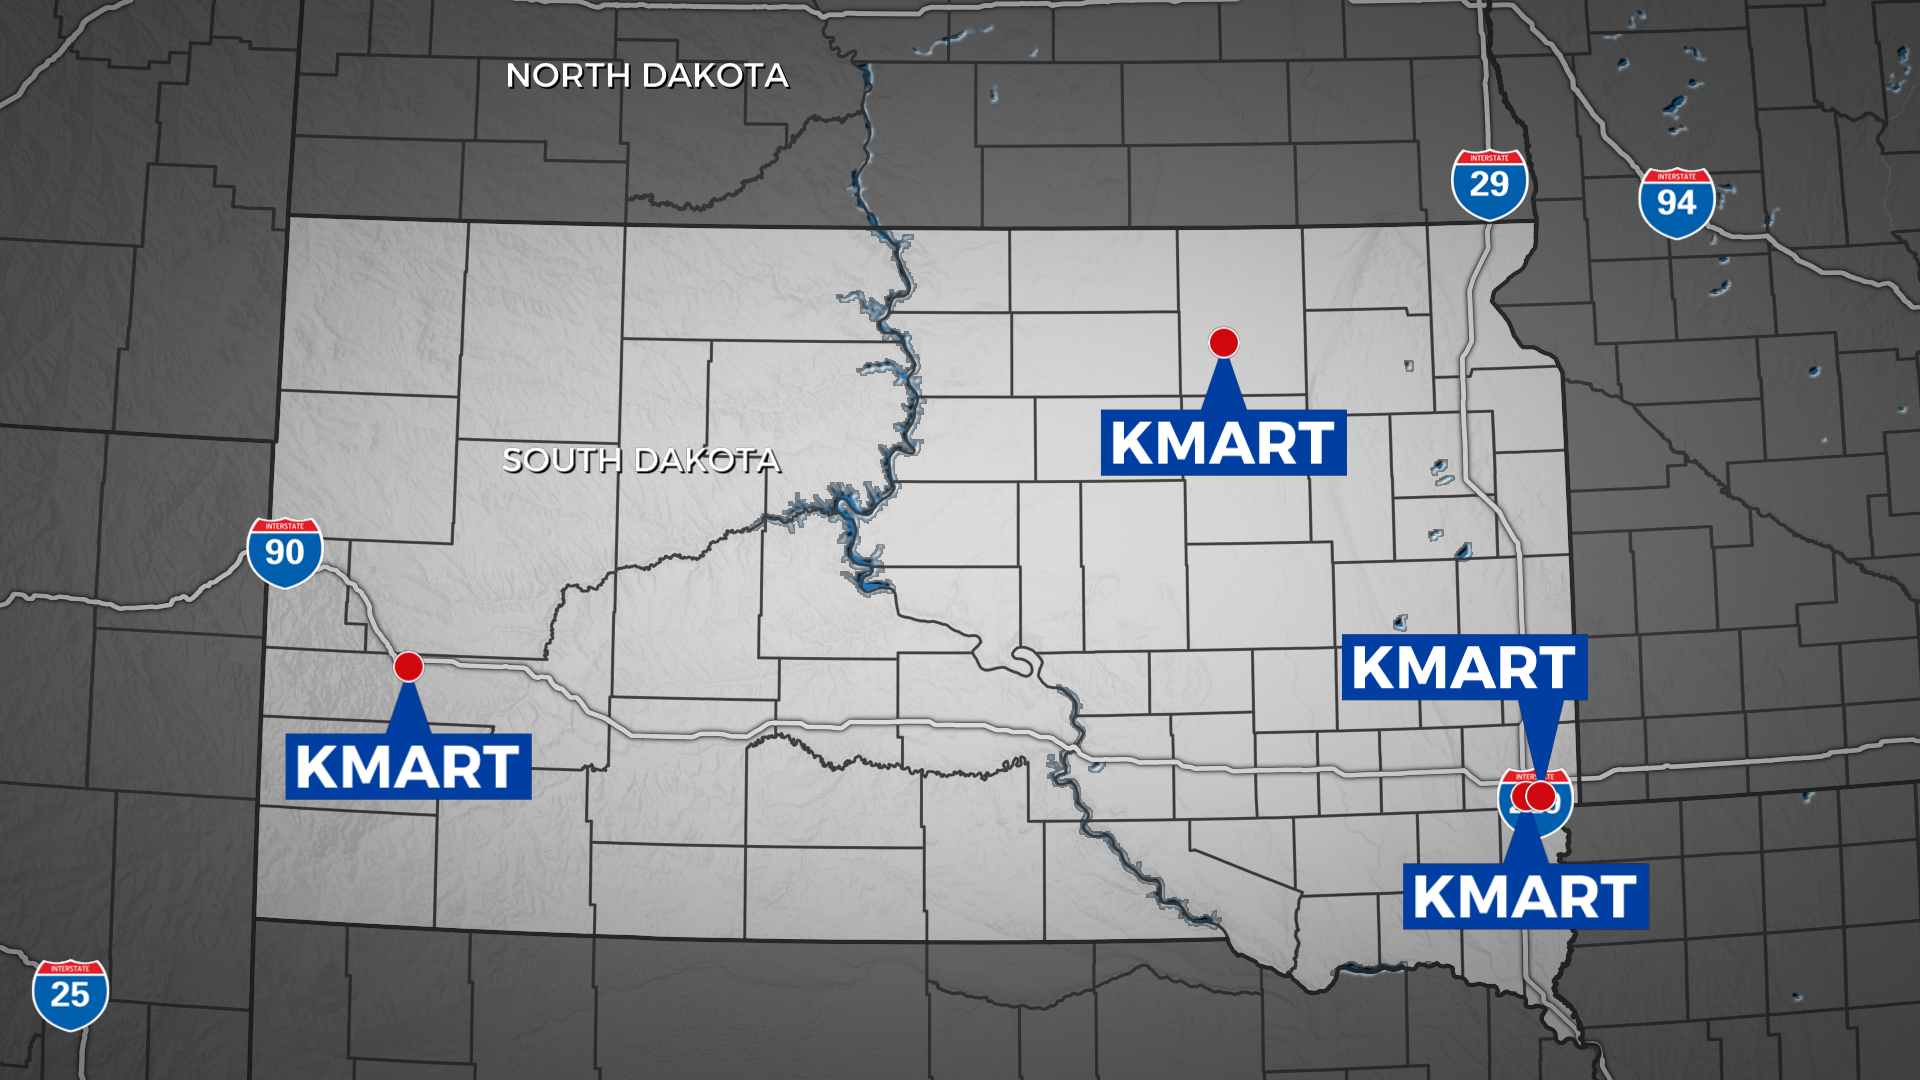 Sioux falls kmart closing kmarts in south dakota includes one that is closing gumiabroncs Image collections